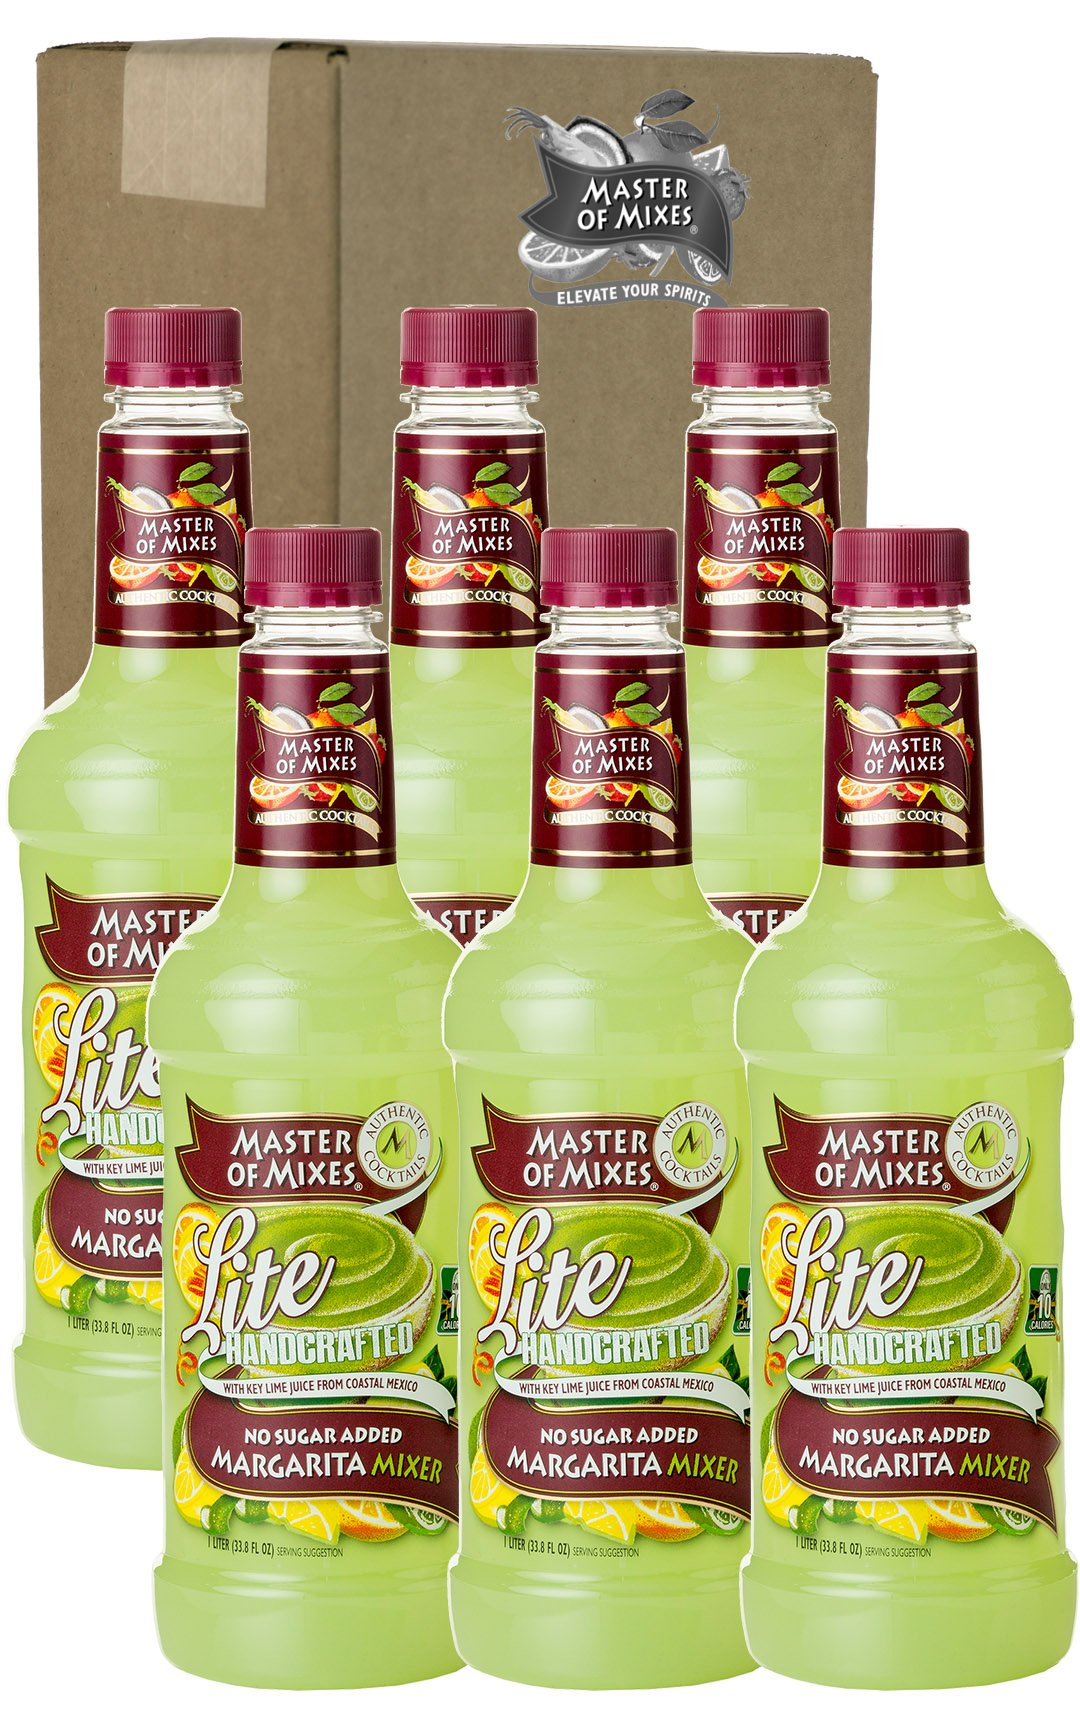 Master of Mixes Margarita Lite Drink Mix, Ready To Use, 1 Liter Bottle (33.8 Fl Oz), Pack of 6 by Master of Mixes (Image #1)